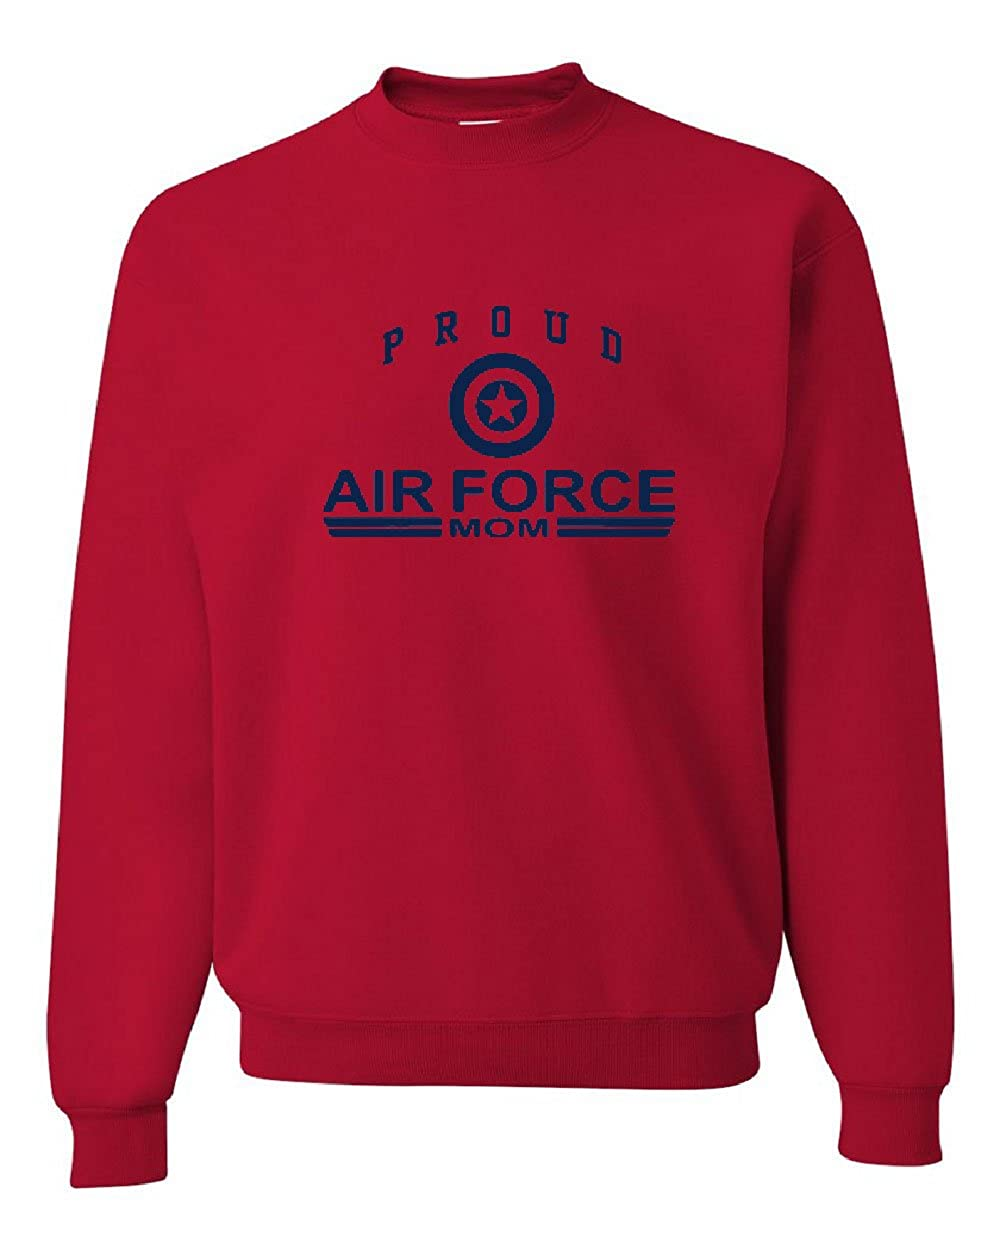 Tee Hunt Proud Air Force Mom Crew Neck Sweatshirt Air Force Military